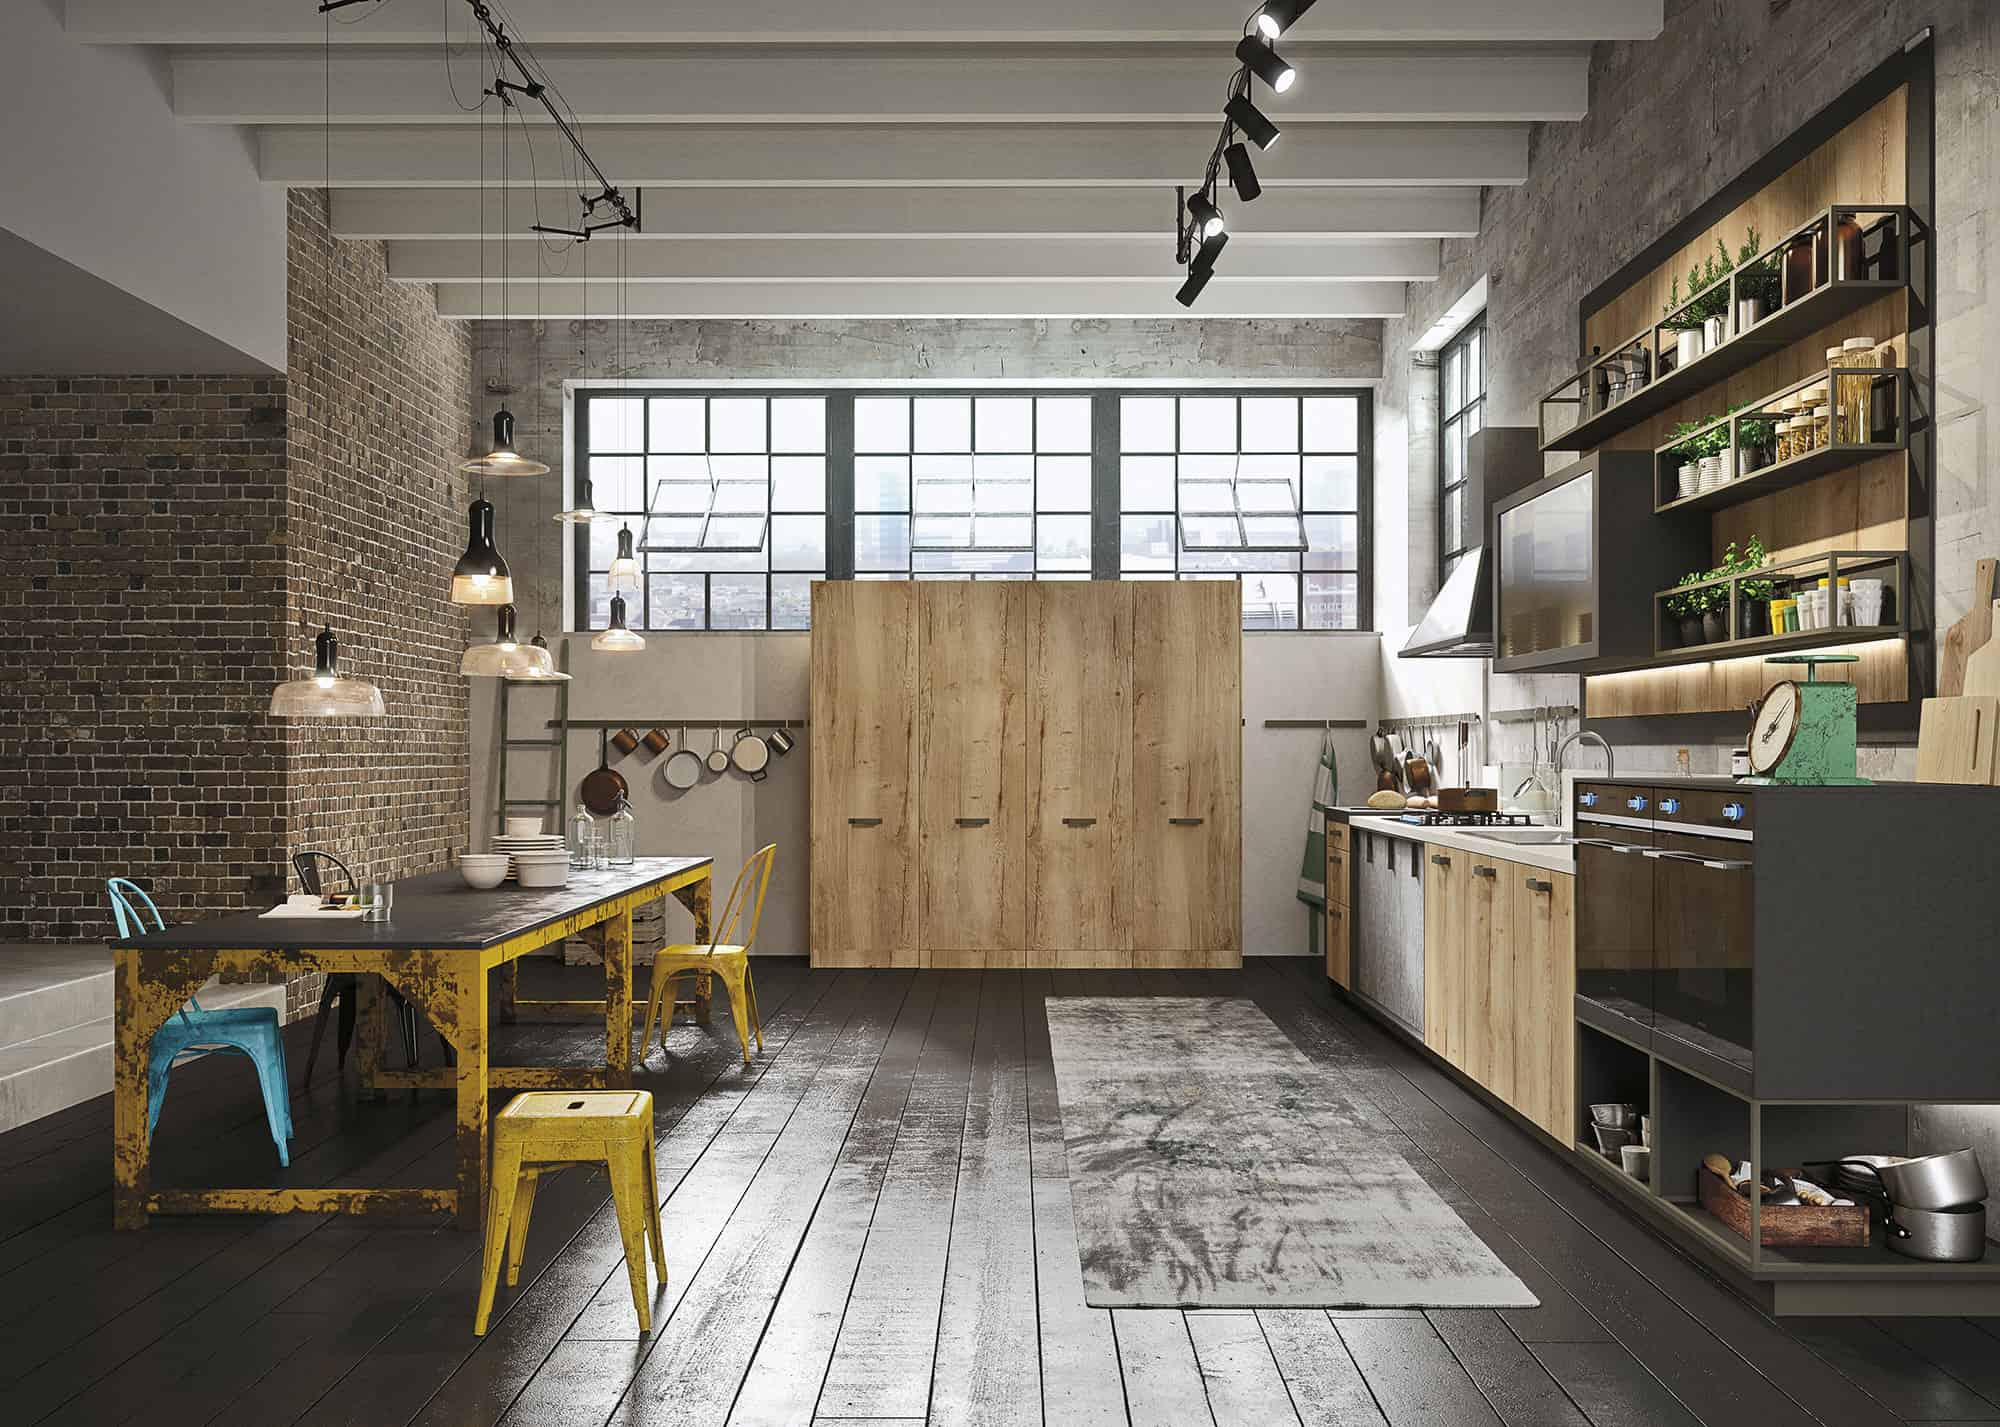 Uncategorized Urban Kitchen Design kitchen design for lofts 3 urban ideas from snaidero the industrial style is fitted with their new nolita handle in a peltro finish